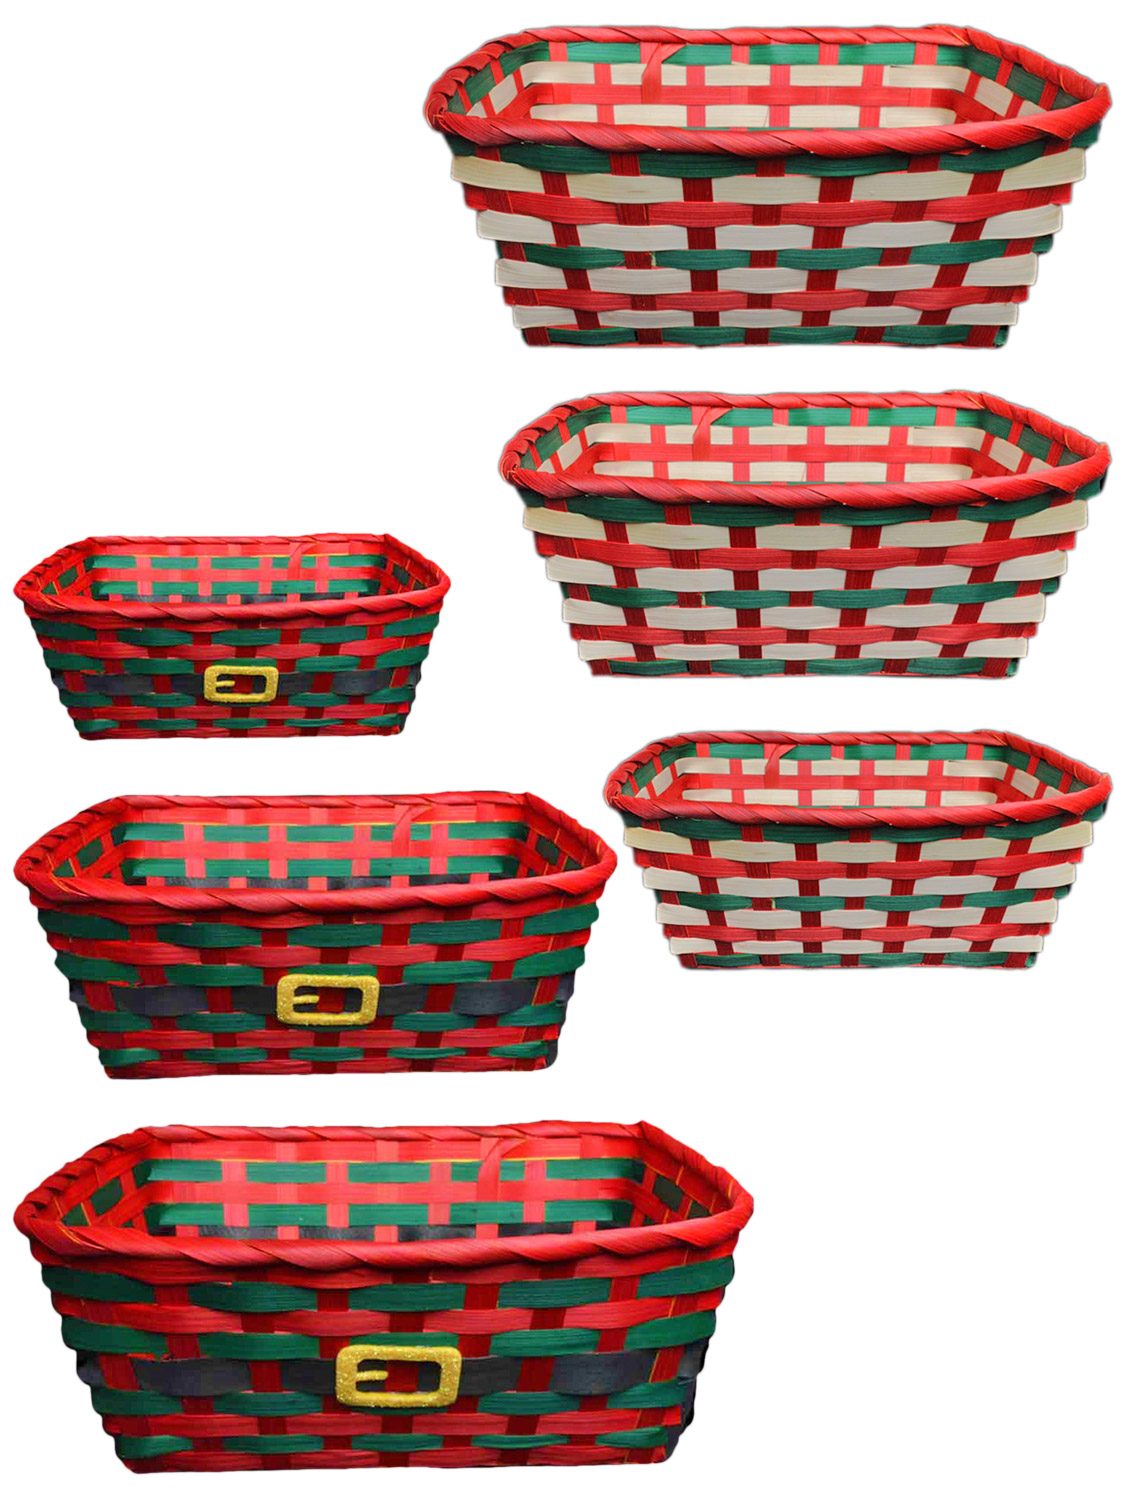 Christmas Baskets.Details About Set Of 3 Traditional Christmas Basket Hamper Red Green Wicker Storage Stackable